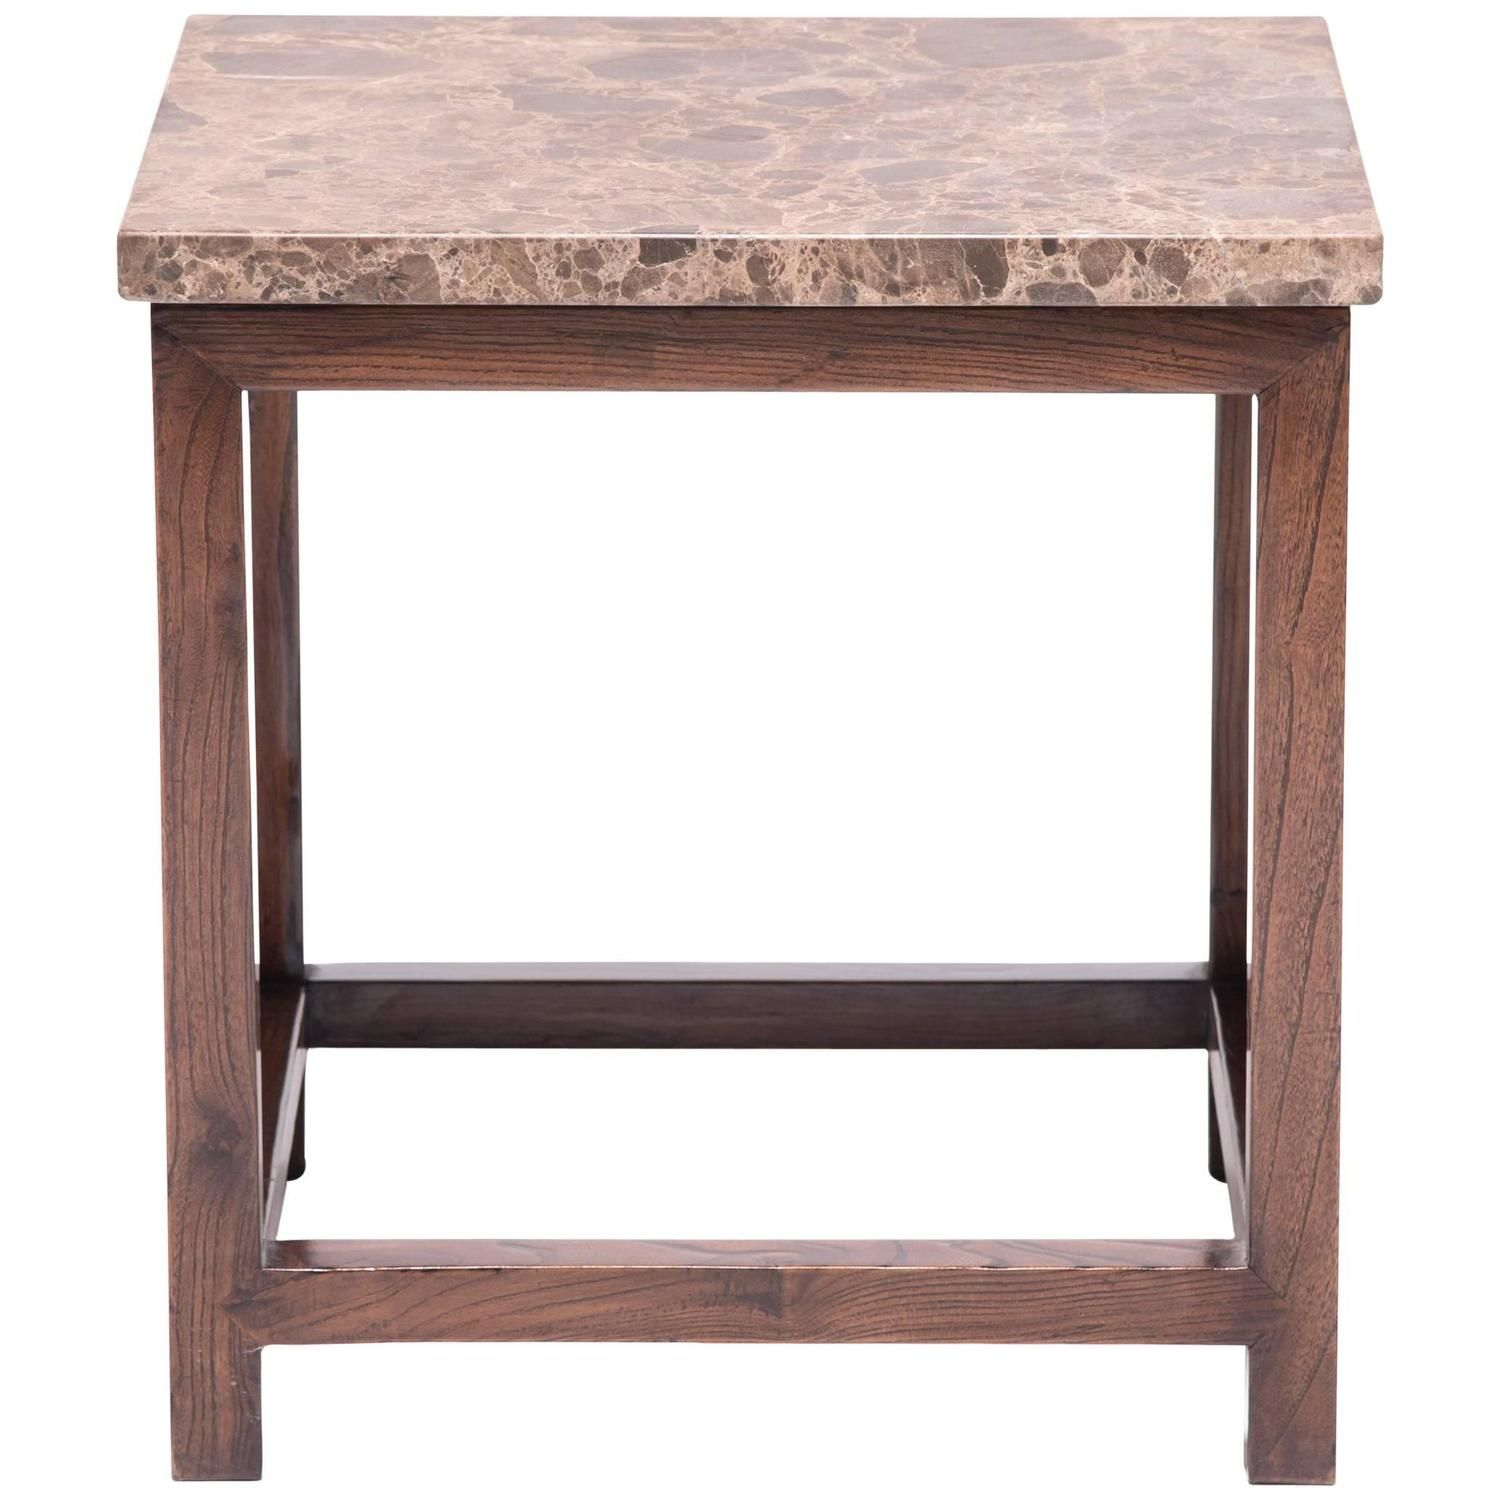 Chinese Square Side Table with Stone Top